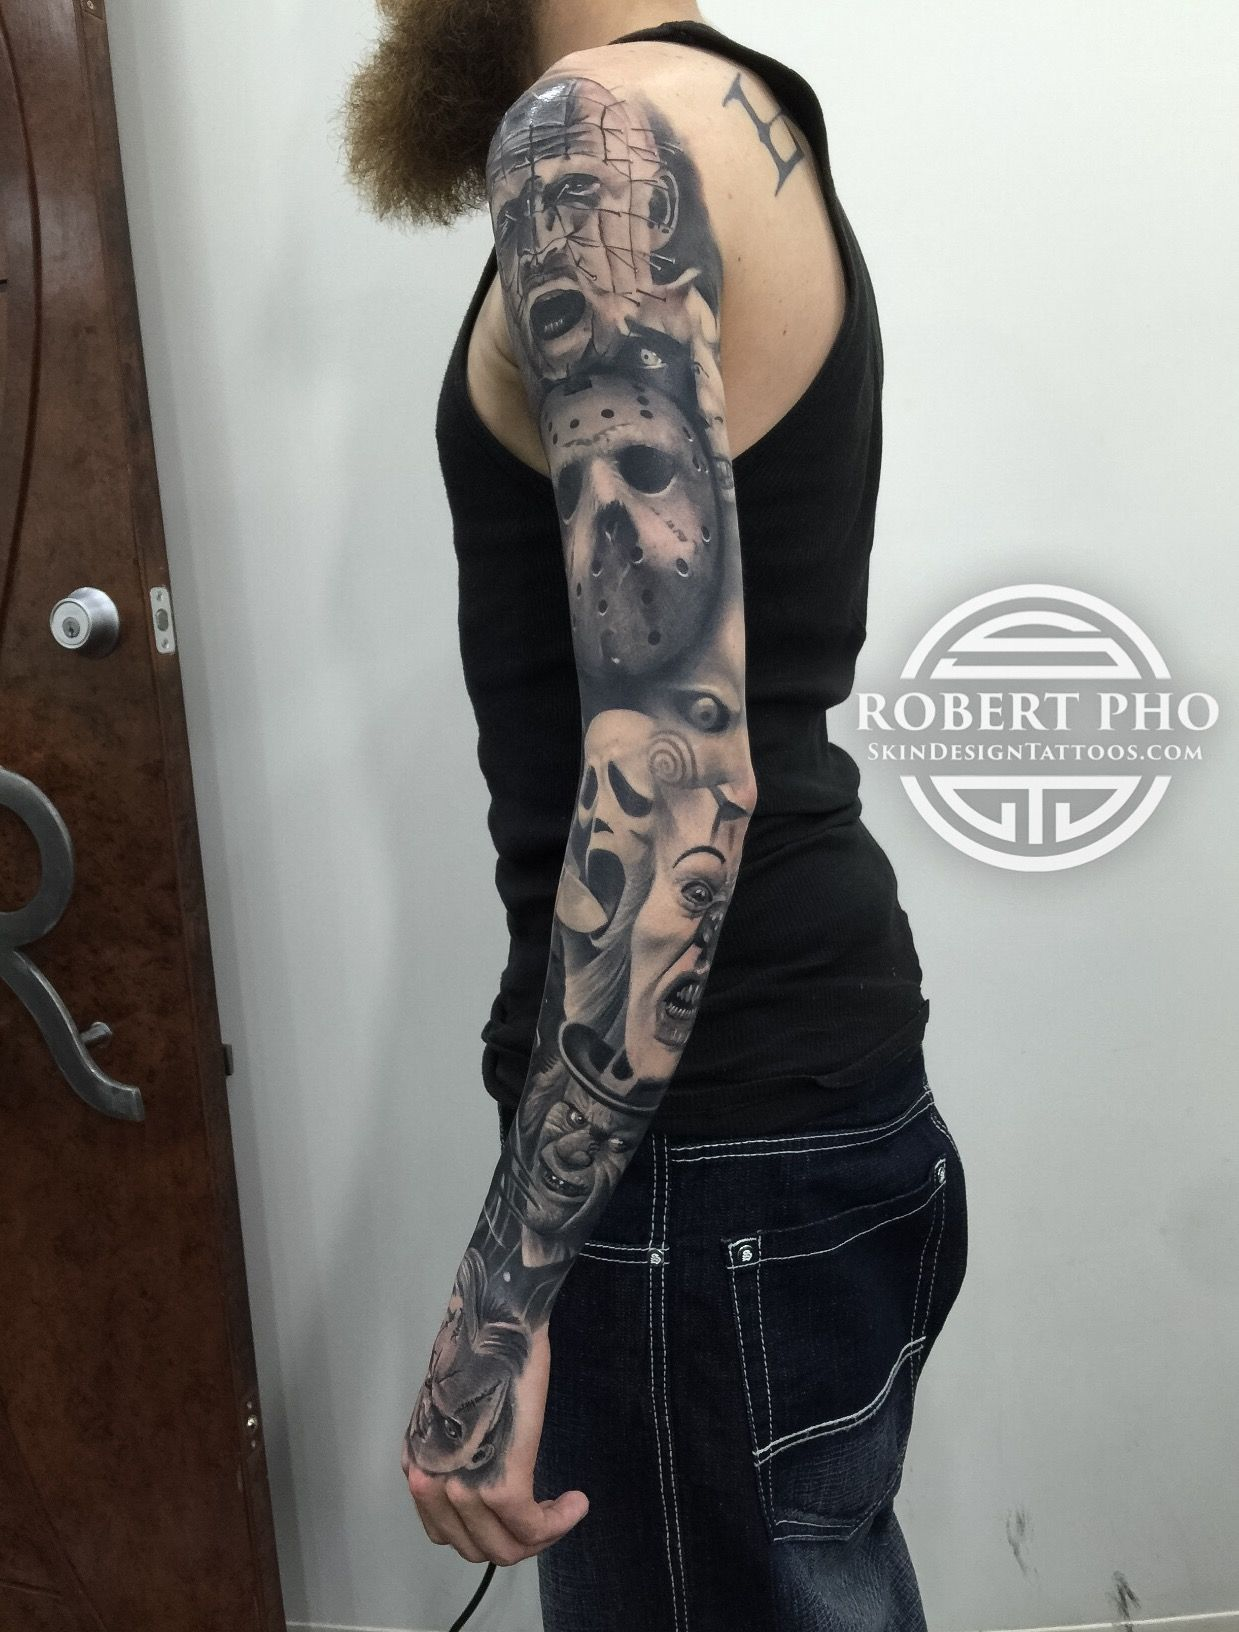 Horror Sleeve Tattoo Car Tattoos Michael Myers Tattoo Movie Tattoos